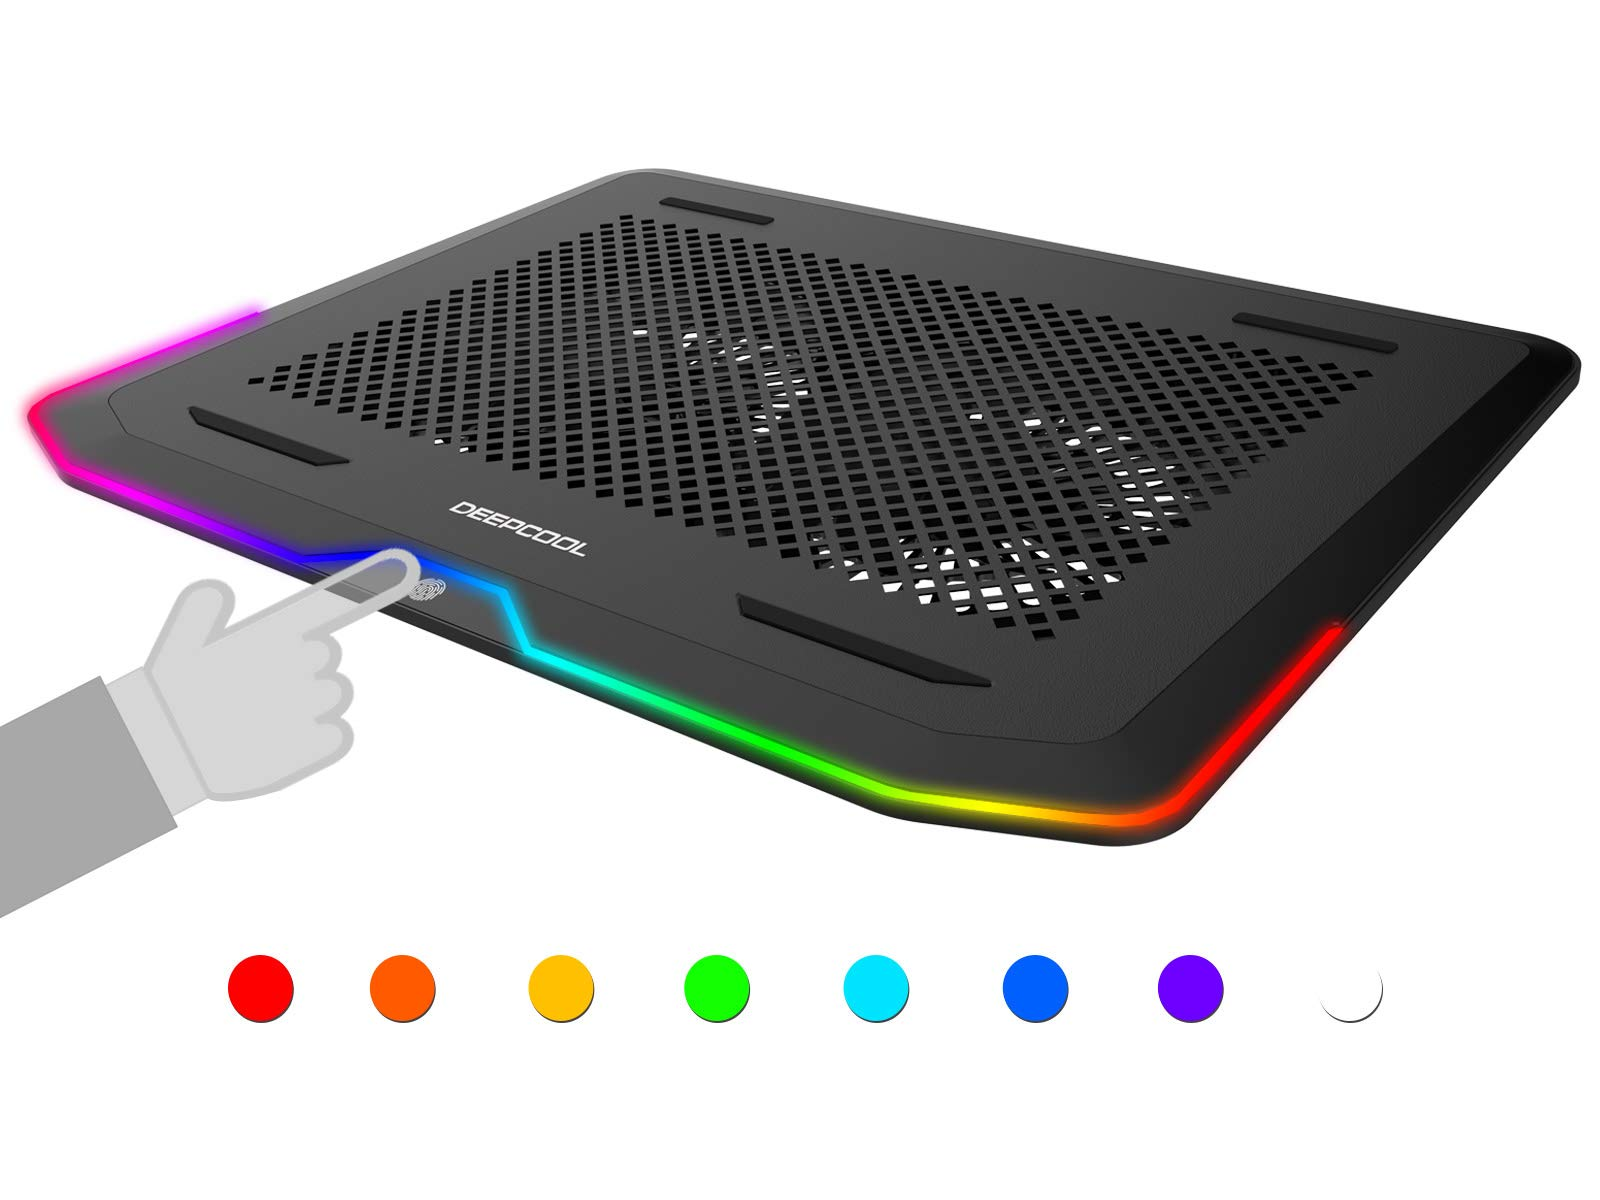 DEEPCOOL N80 RGB Laptop Cooling Pad, 16.7 Million RGB Colors LED, Pure Metal Panel, Two 140mm Fans, Two Adjustable Angels, Two USB 3.0 Ports, Capacitive Touch Key, up to 17.3'' Notebooks